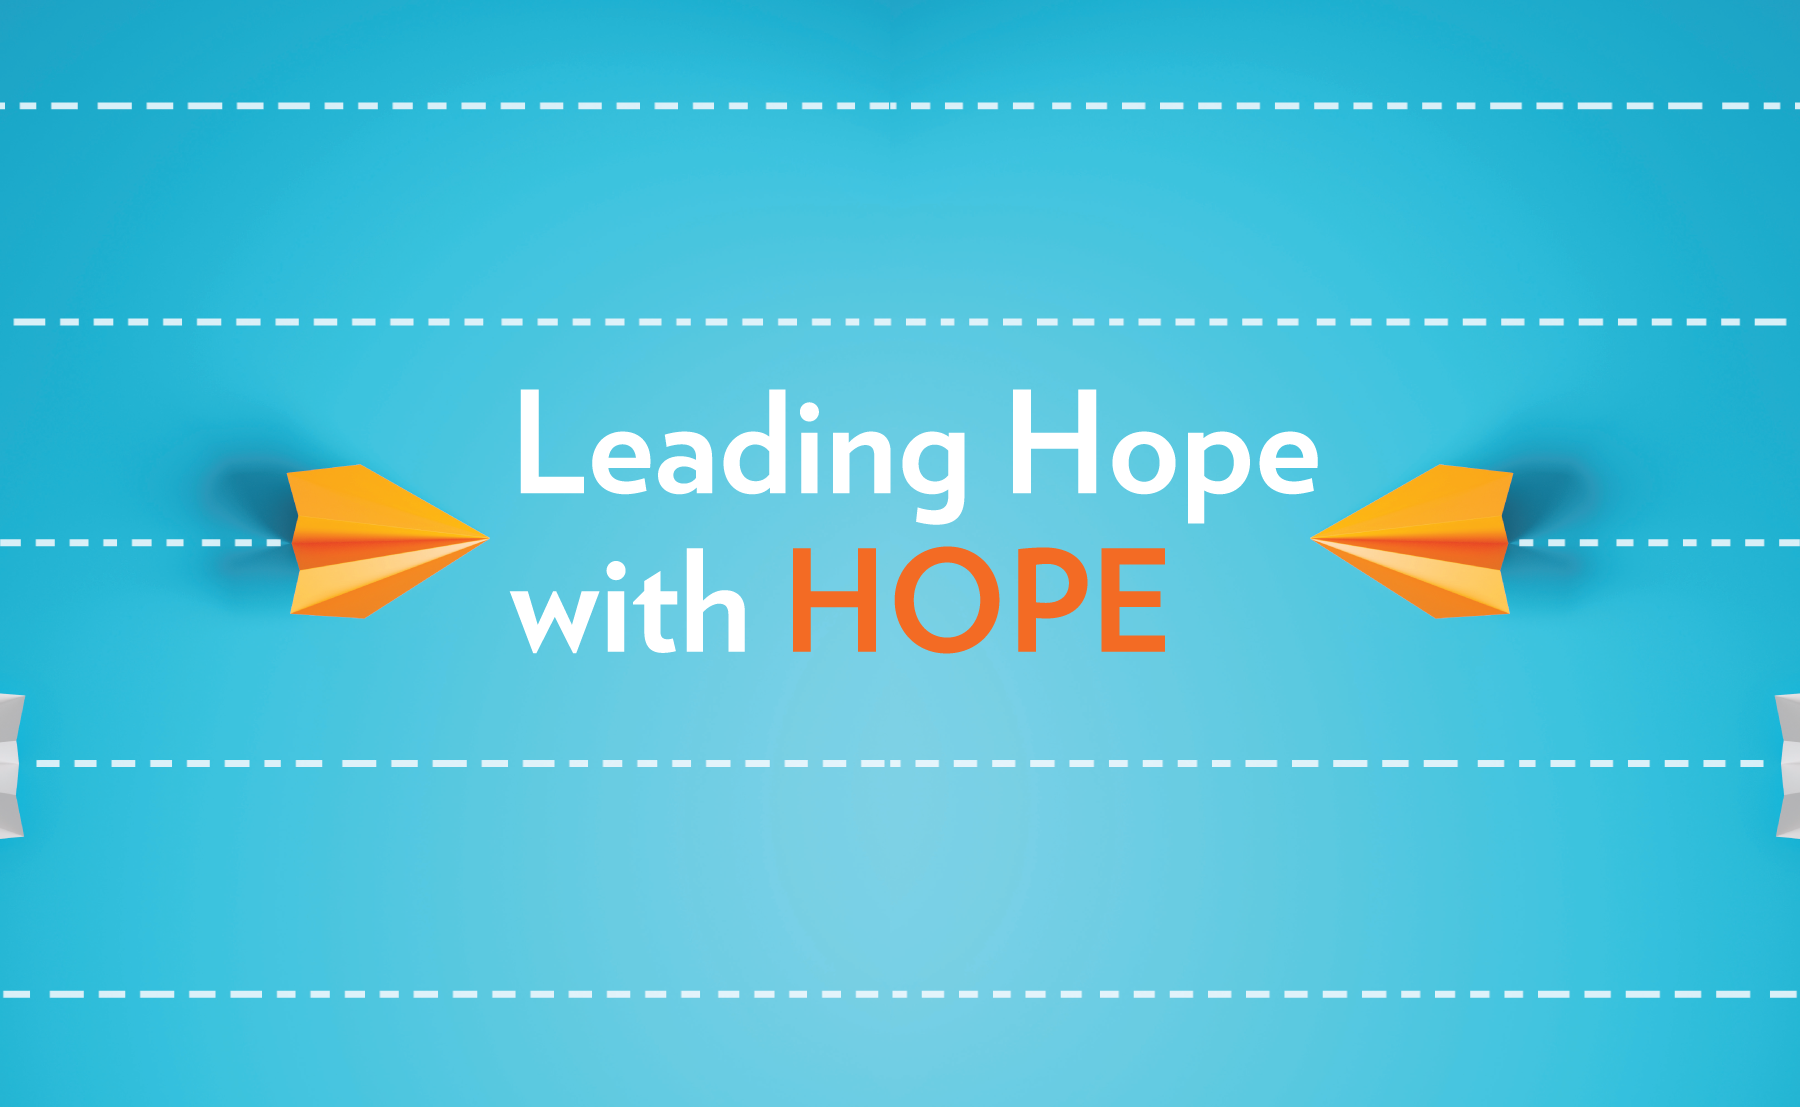 News from Hope: Leading Hope with Hope